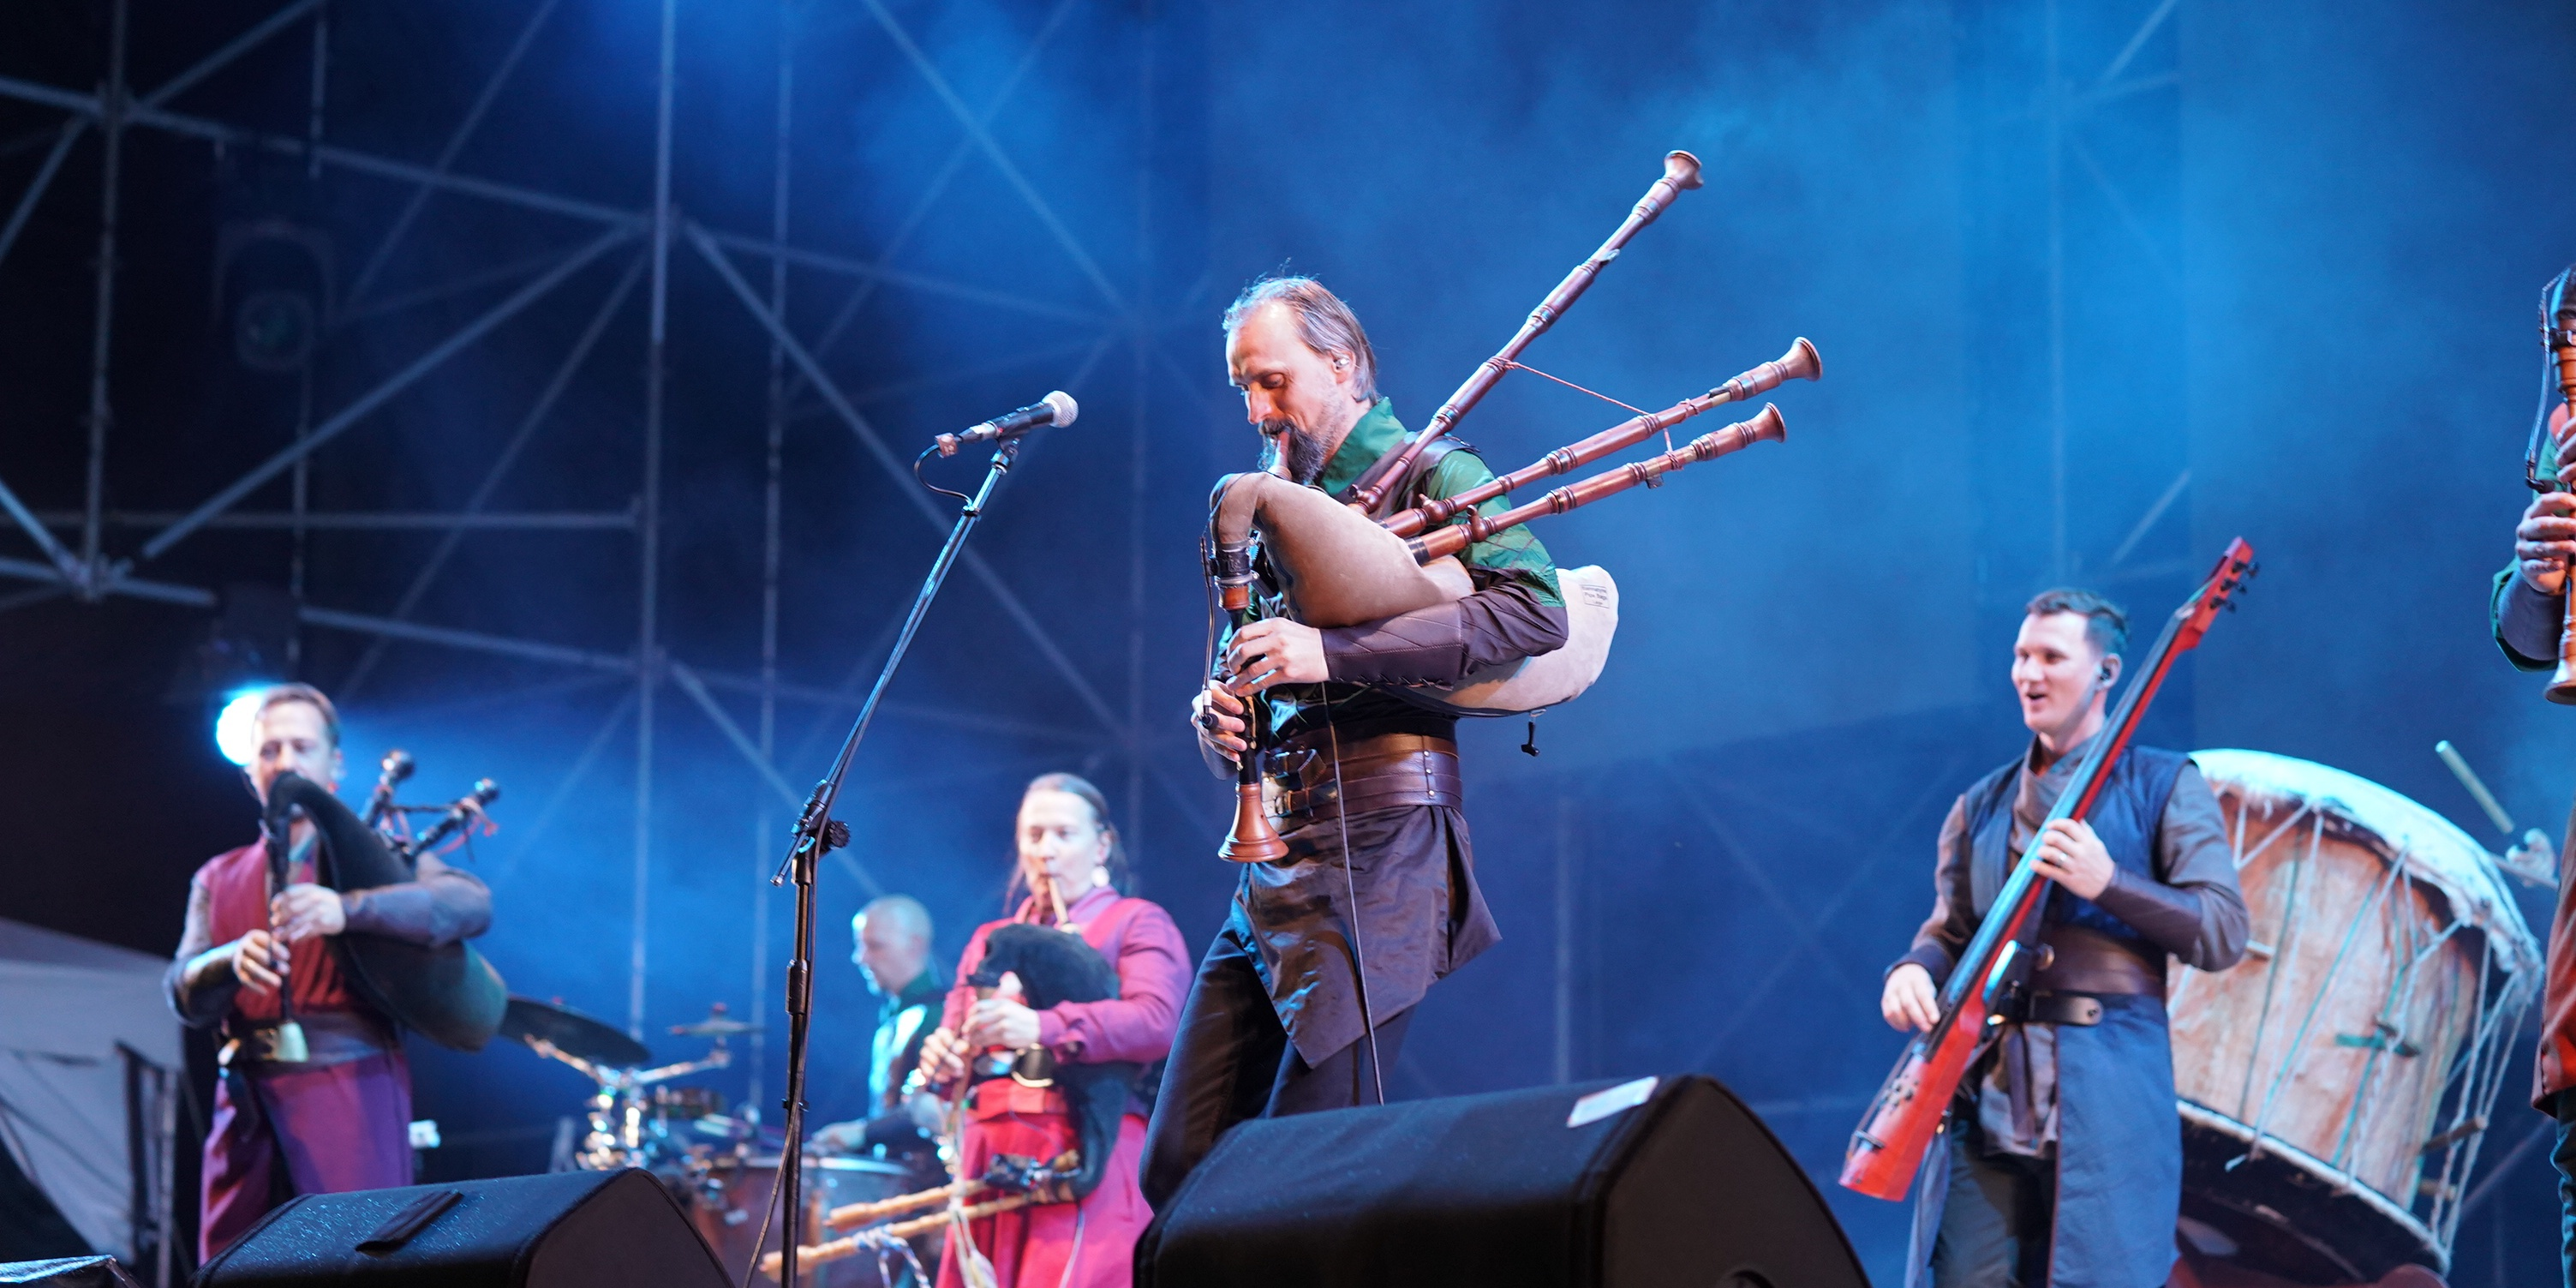 A look back at World Music Festival @ Taiwan